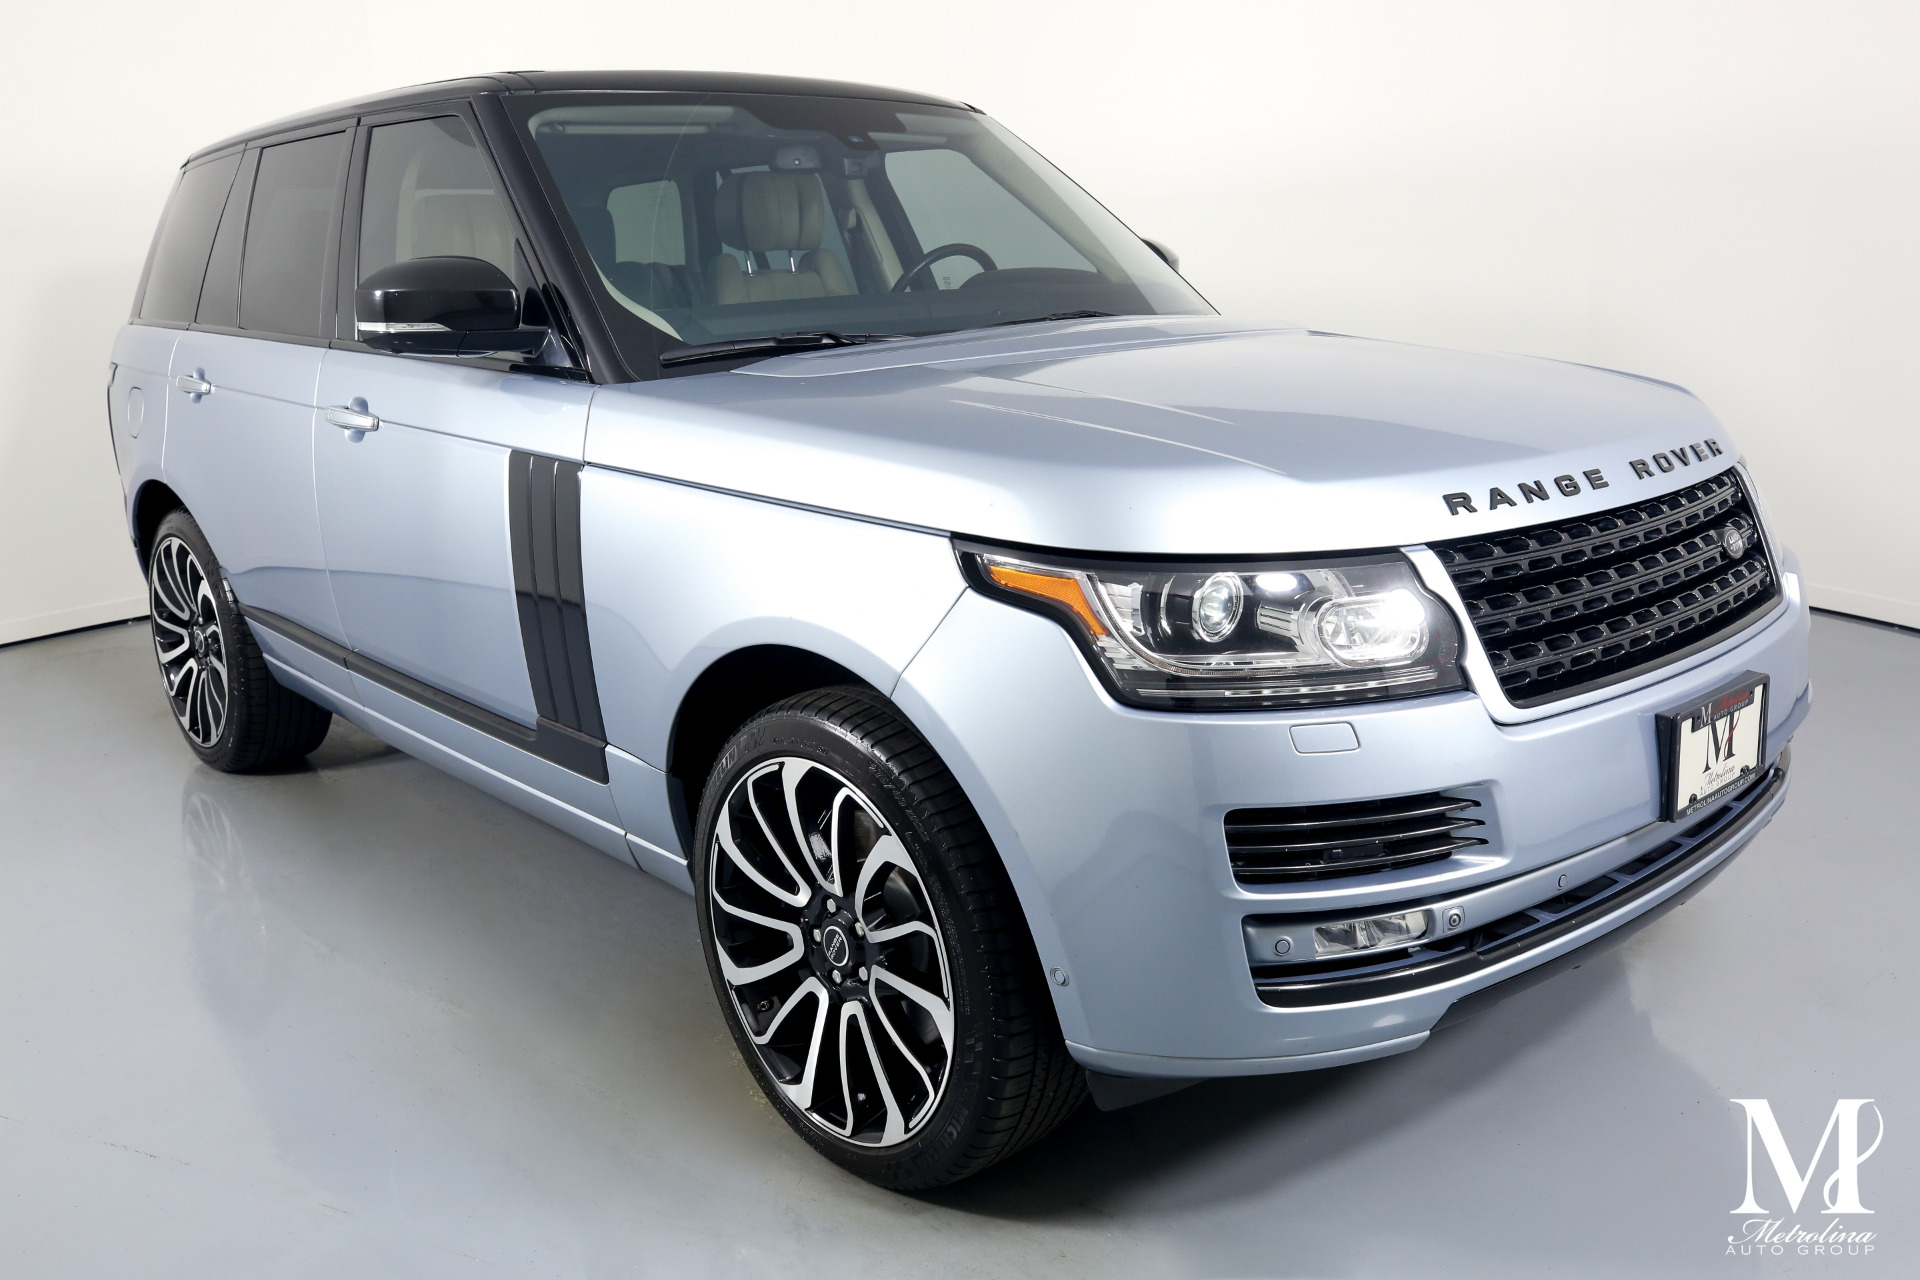 Used 2014 Land Rover Range Rover Autobiography for sale $53,996 at Metrolina Auto Group in Charlotte NC 28217 - 2